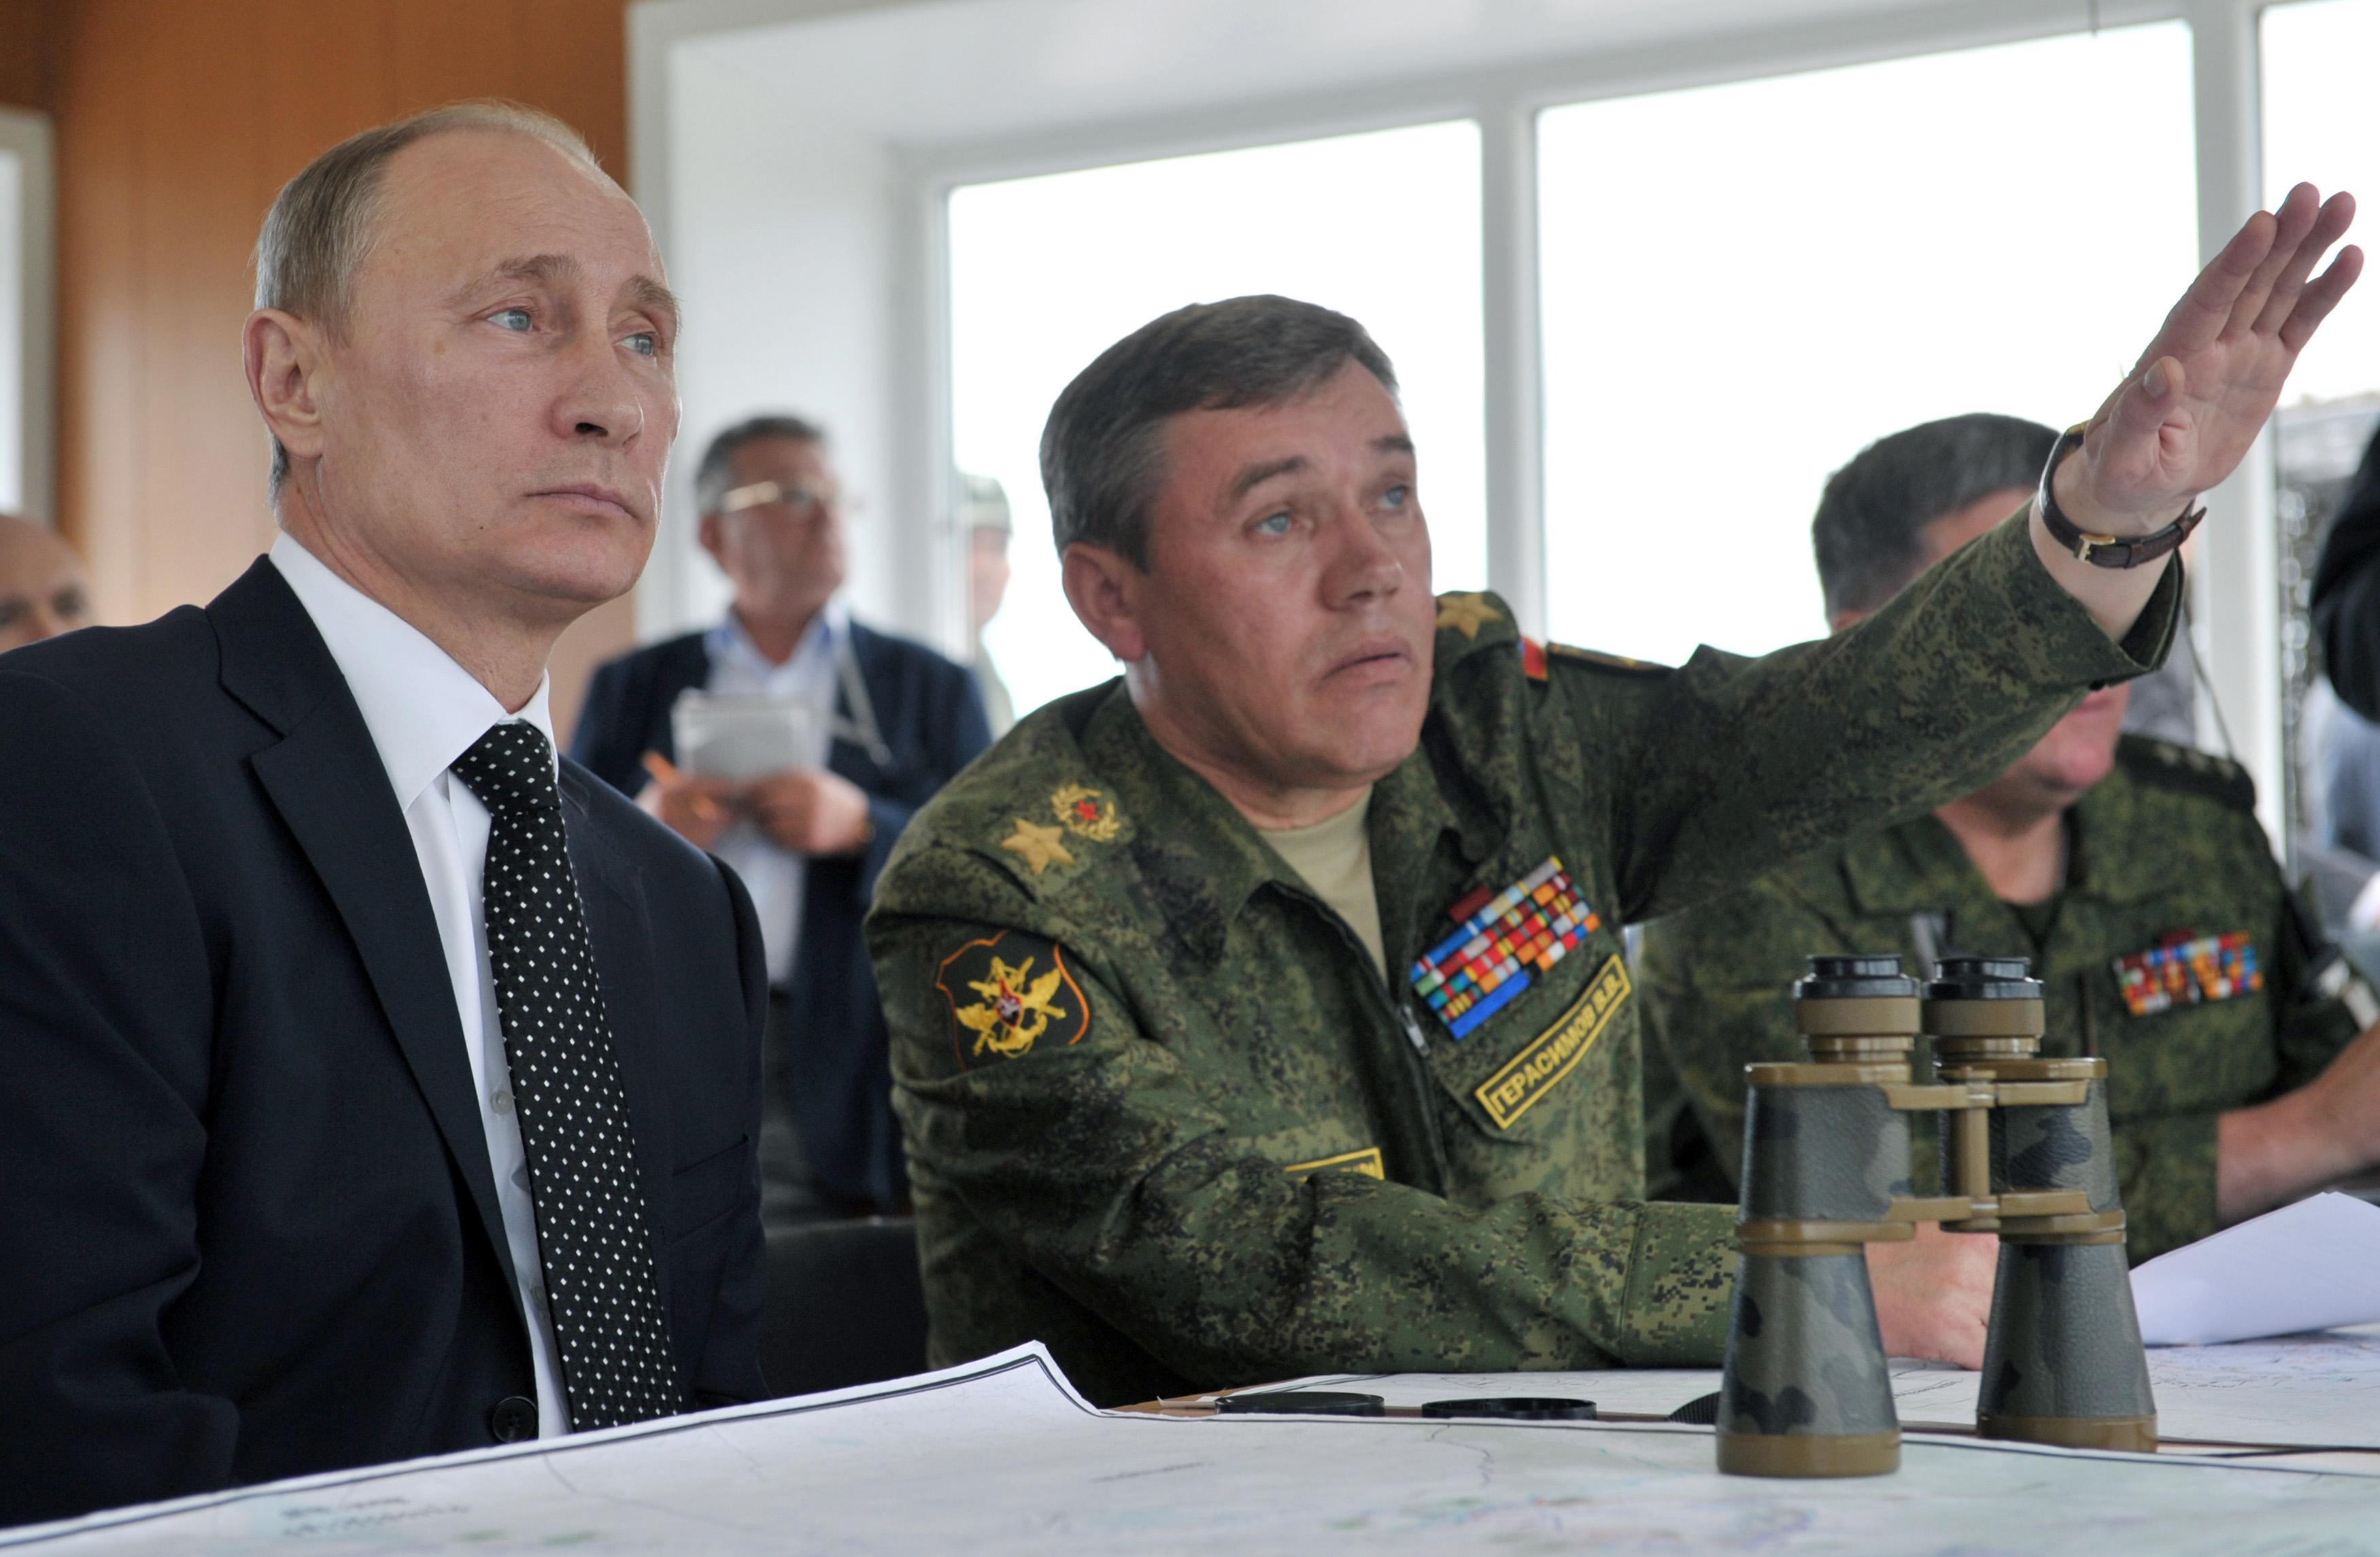 Russian President Vladimir Putin, left, listens to Chief of Russia's military's General Staff Valery Gerasimov, right, as he observes military exercises near the Baikal Lake in Russia on Wednesday, July 17, 2013. Russia has launched its biggest military maneuvers since Soviet times, involving 160,000 troops and about 5,000 tanks across Siberia and the far eastern region. (AP Photo/RIA Novosti, Alexei Nikolsky, Presidential Press Service)